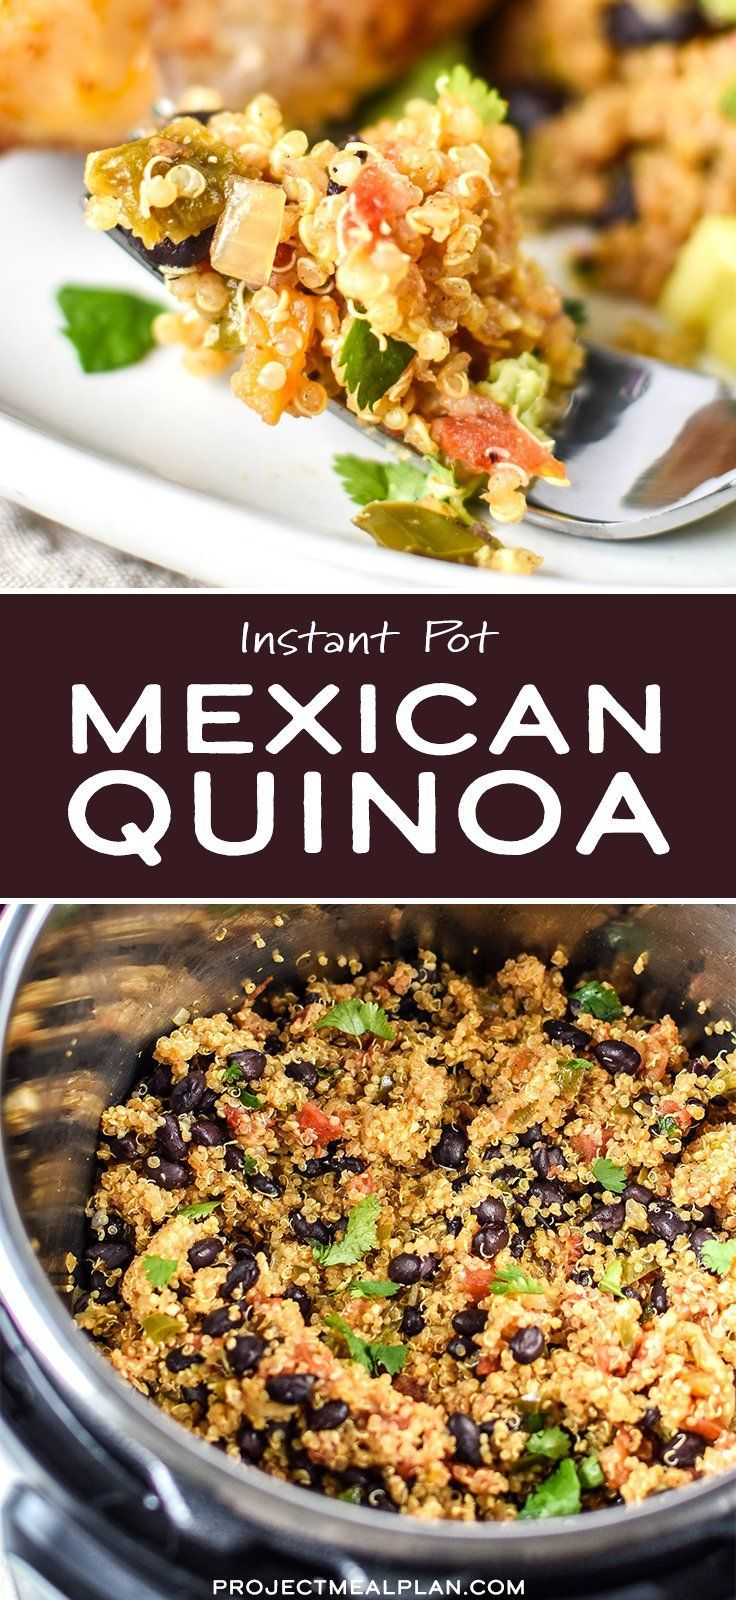 Taking quinoa in the Instant Pot up a few notches... to Instant Pot Mexican Quinoa! Super simple, all done in the IP, and makes a great meal prep side dish or burrito filling with a kick! - ProjectMealPlan.com #quinoa #instantpot #mexicanquinoa #easysidedish #sidedishes